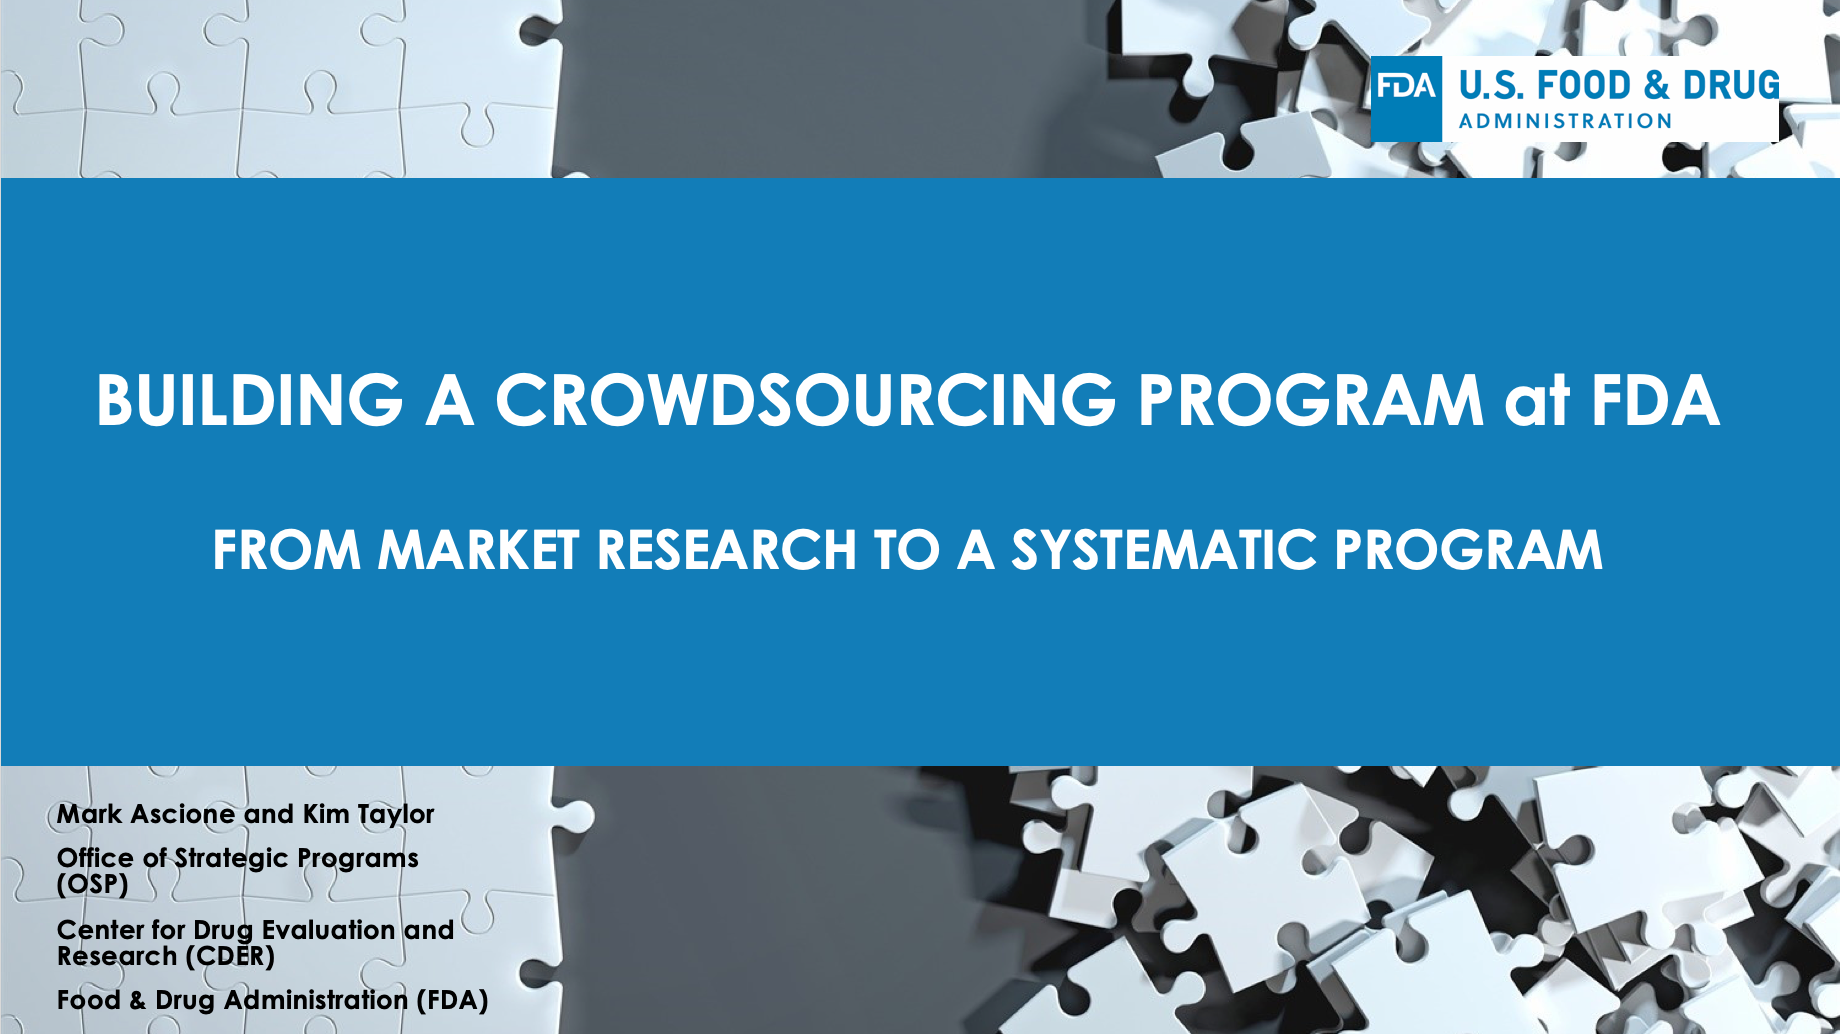 Building and Evolving a Crowdsourcing Program at FDA